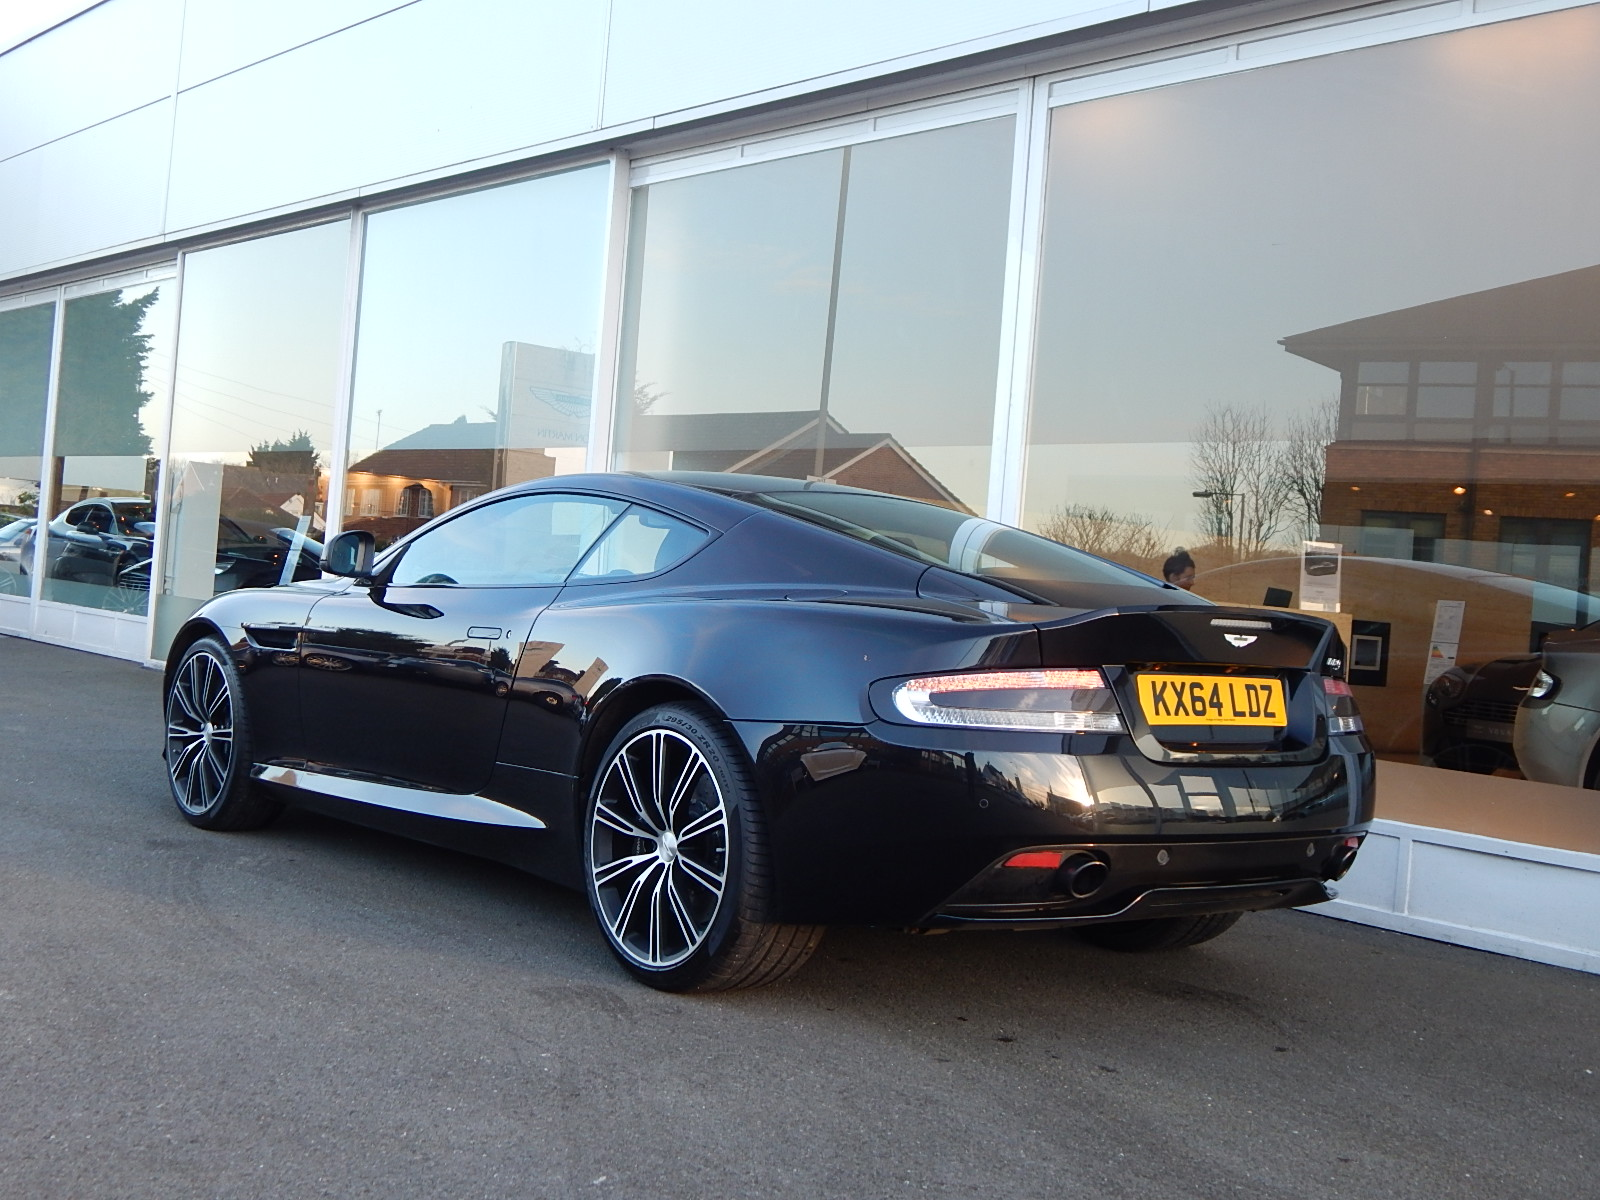 Aston Martin DB9 V12 2dr Touchtronic, Carbon Edition image 19